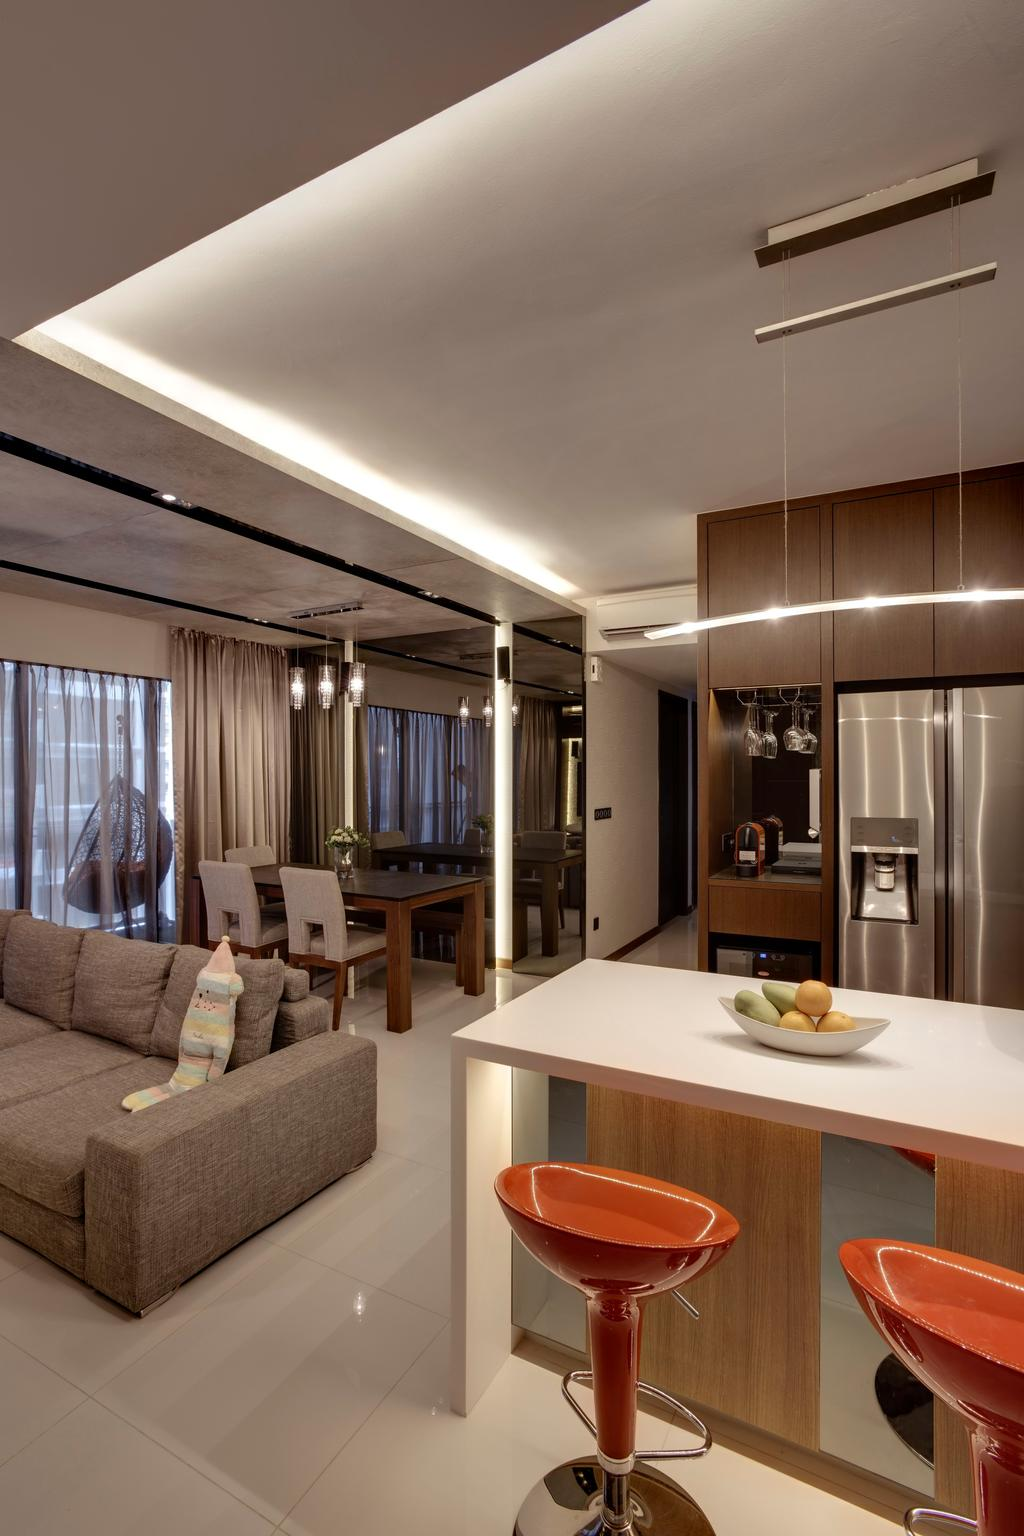 Contemporary, Condo, Living Room, RiverParc Residence, Interior Designer, The Orange Cube, Modern, Sofa, Dining Chairs, Dining Table, Bar Stool, Island Too, Fridge, Cabinets, Swing, Curtain, Mirror, Dining Lights, Balcony, Couch, Furniture, Lighting, Home Decor, Table, Dish, Food, Meal, Plate, Chair, Indoors, Interior Design